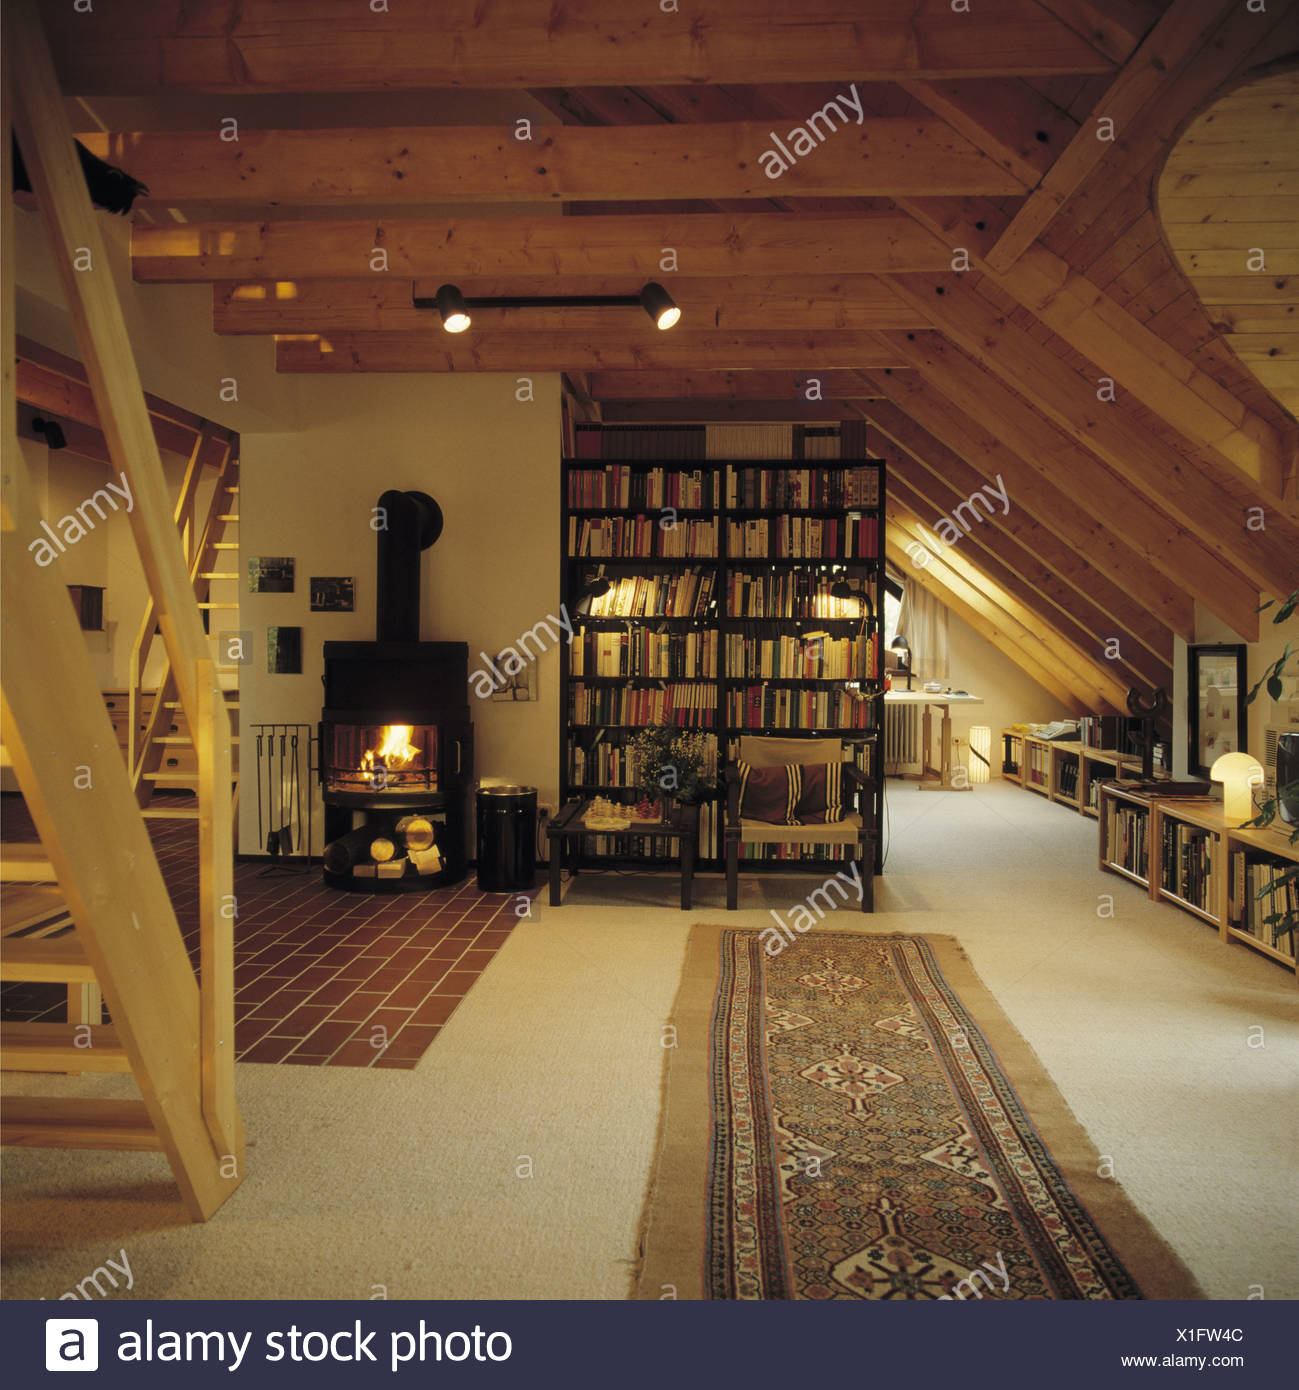 Bookshelves Beside Black Stove In Large Openplan Attic